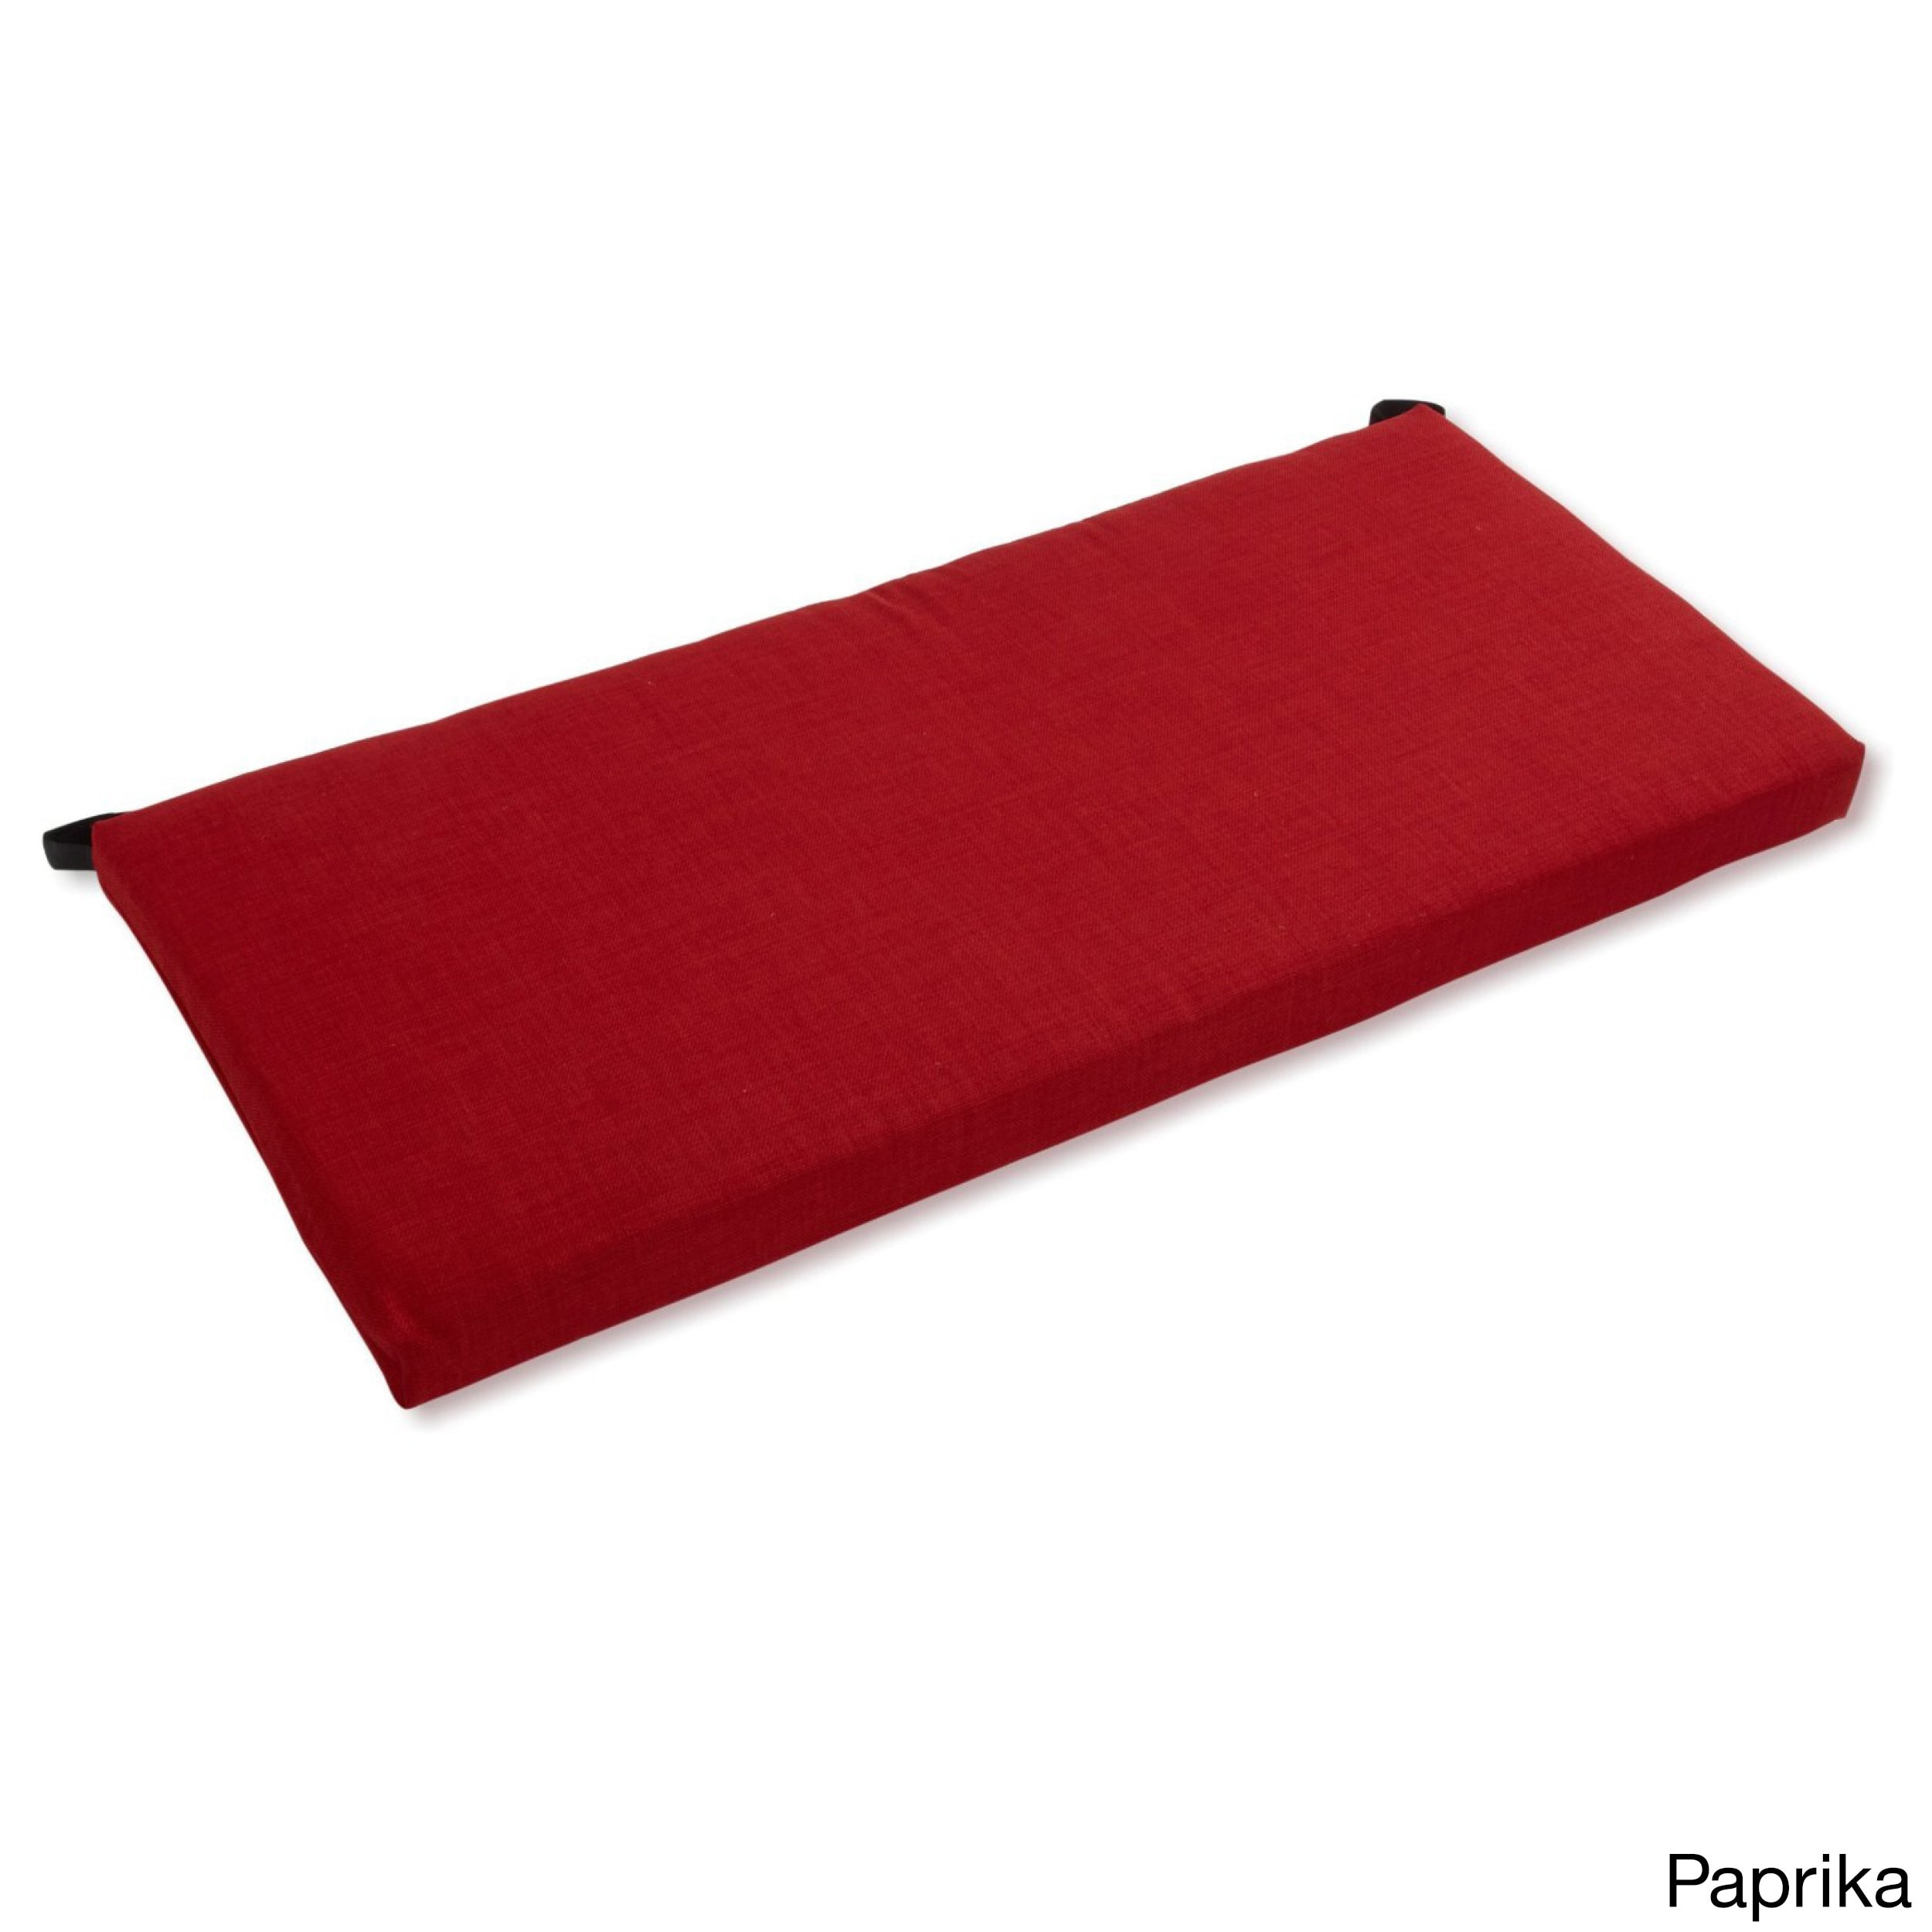 x outdoor inch of contemporary full size lawn cushions pads blue indoor waterproof bench long cushion outside